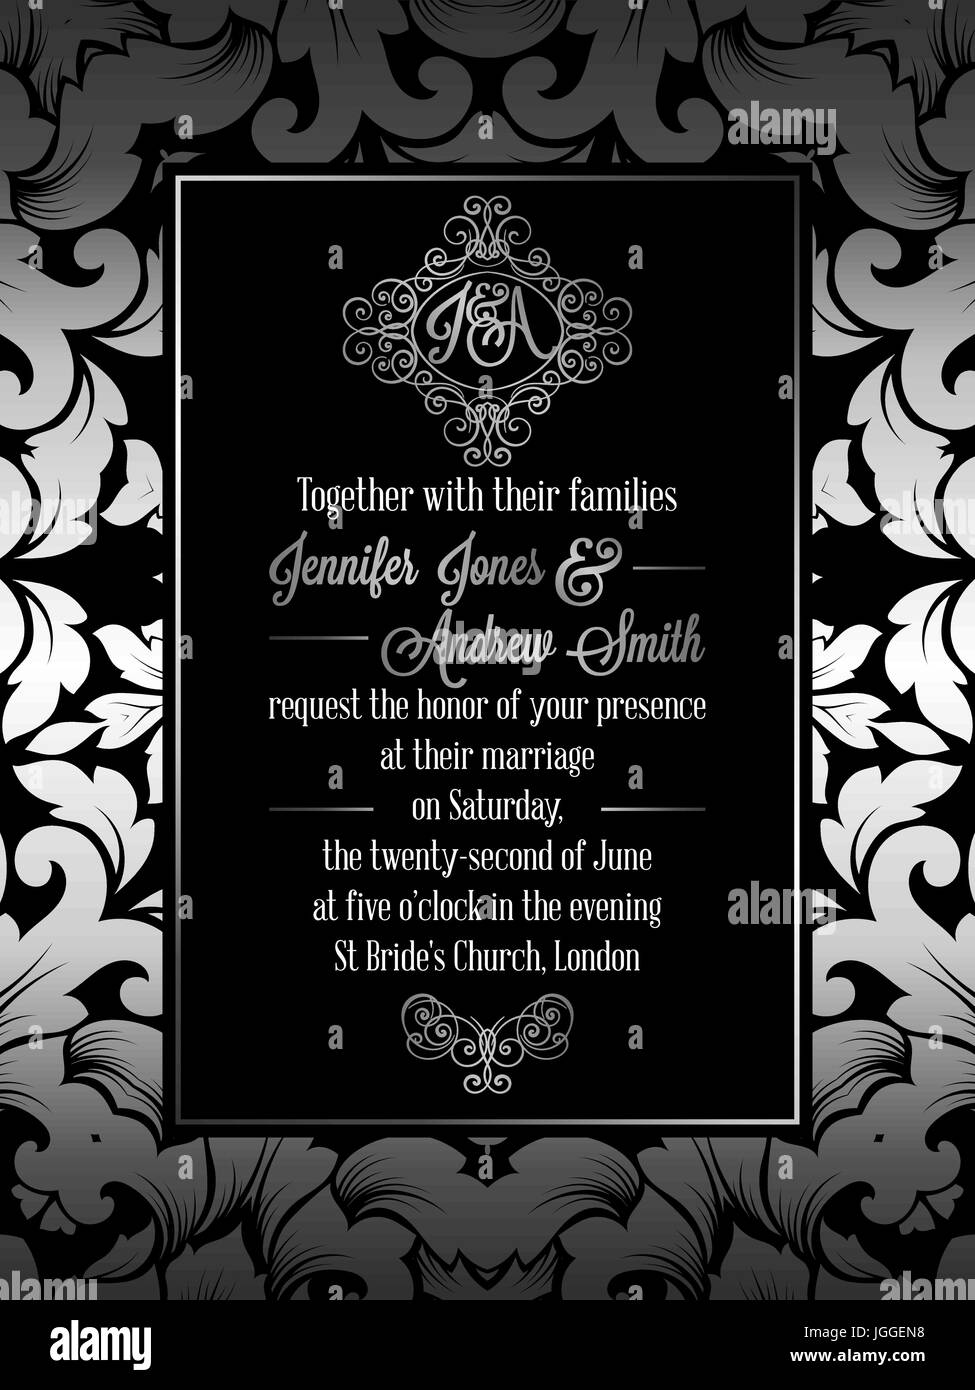 Vintage baroque style wedding invitation card template elegant vintage baroque style wedding invitation card template elegant formal design with damask background traditional decoration for wedding silver dec stopboris Image collections